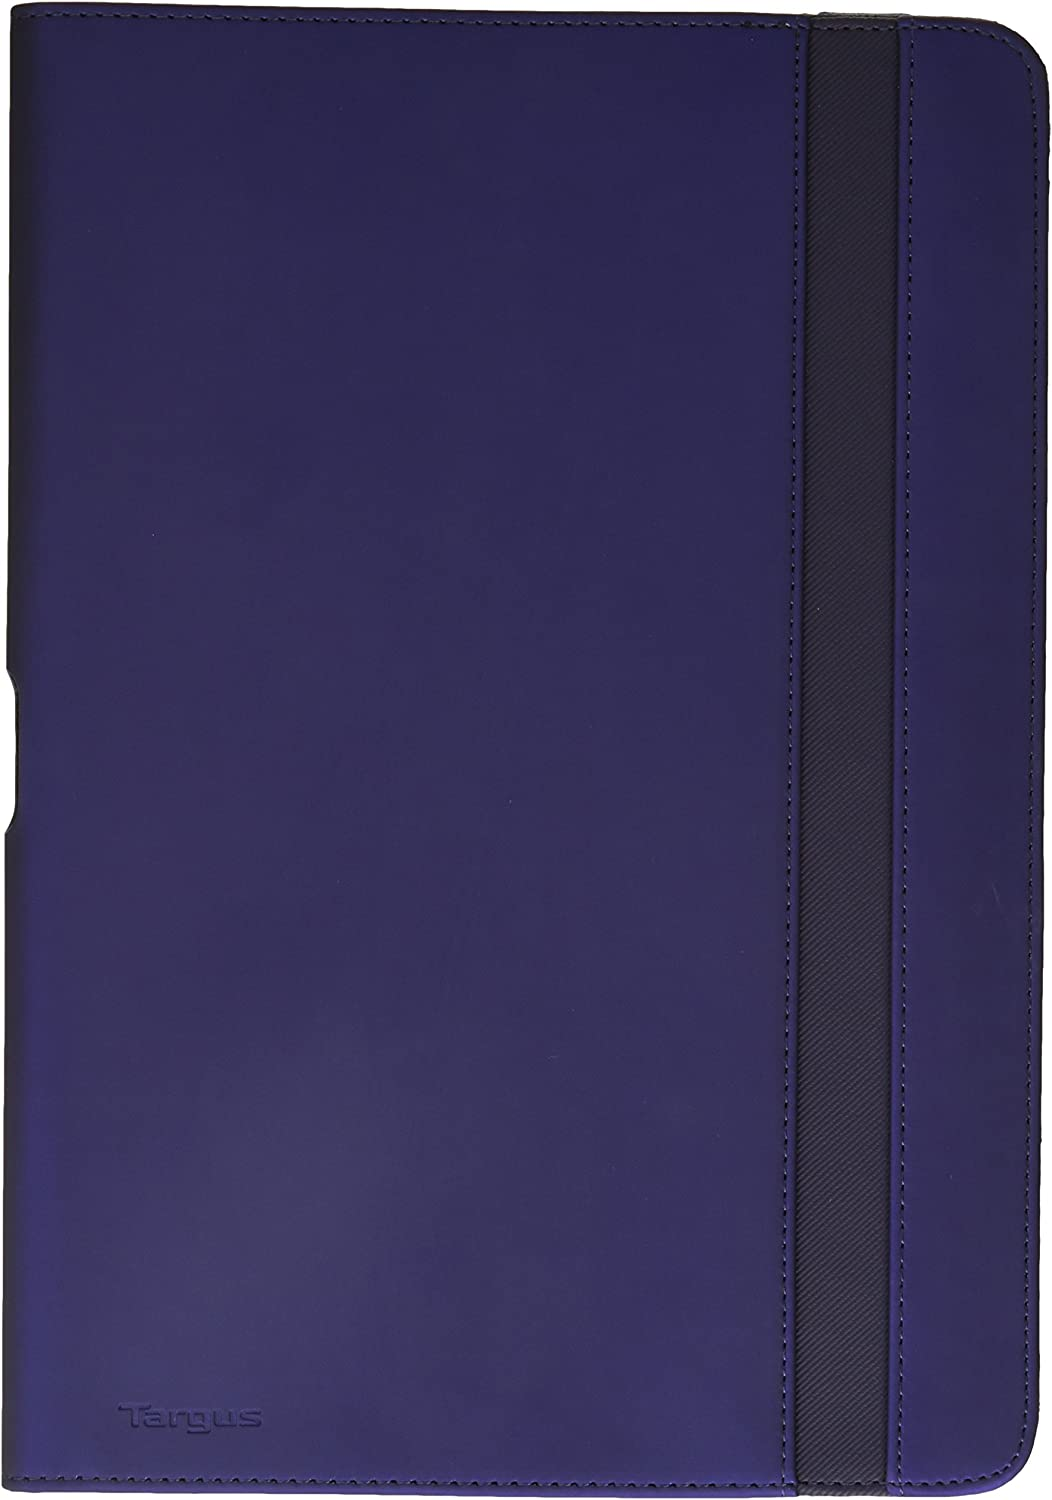 Targus Kickstand Galaxy 3 for 10.1-Inch Tablet Case, Blue (THZ20001US)